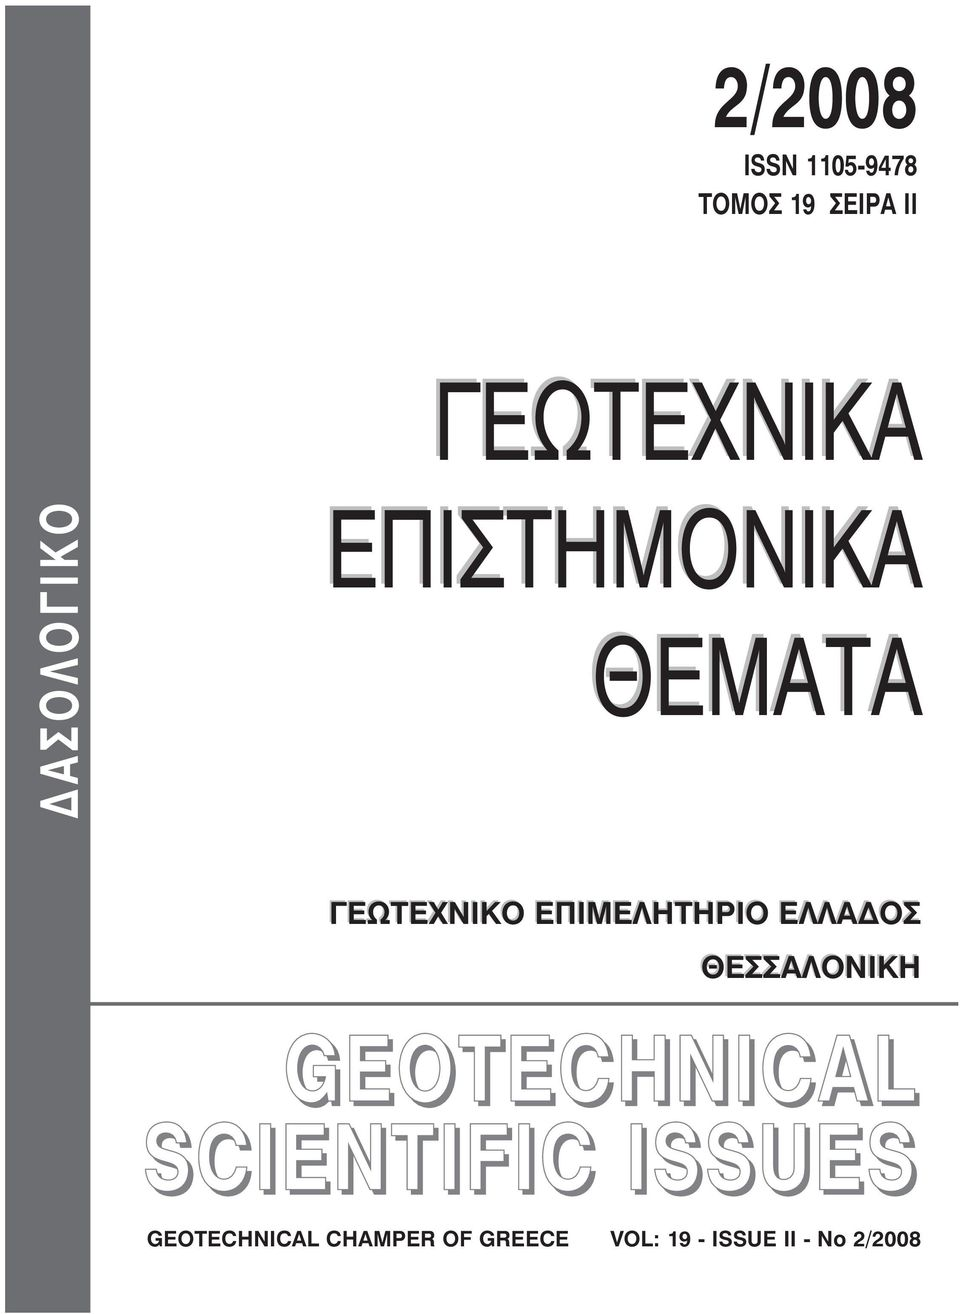 GEOTECHNICAL SCIENTIFIC ISSUES GEOTECHNICAL